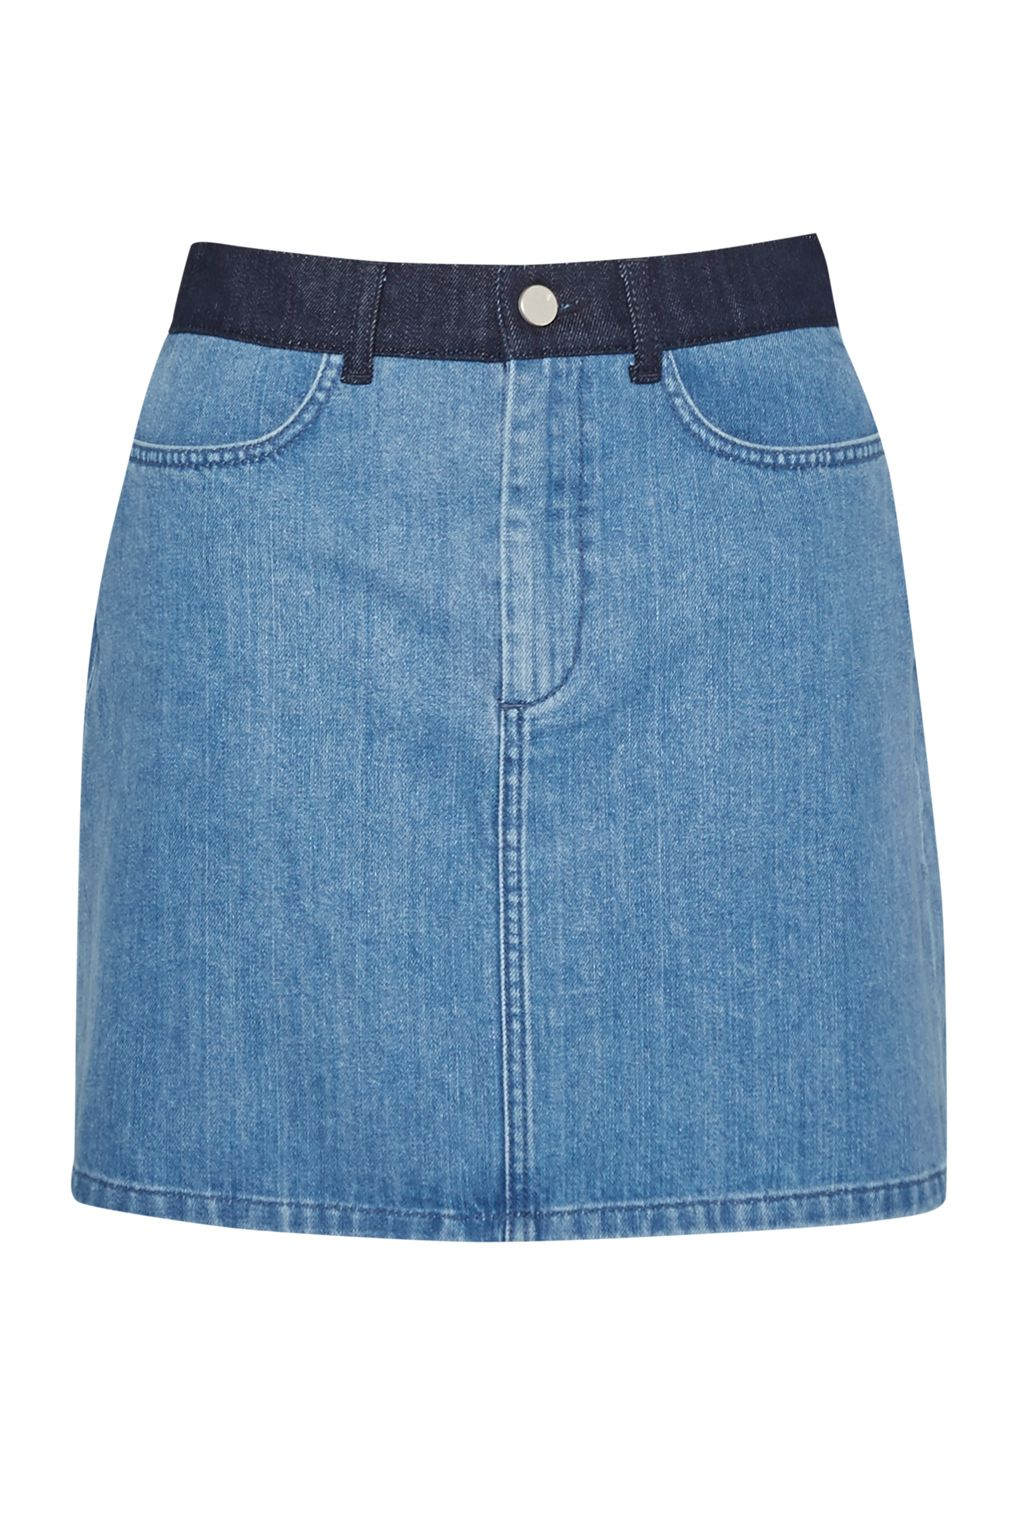 French Connection Wisteria Blue Denim Mini Skirt, Blue